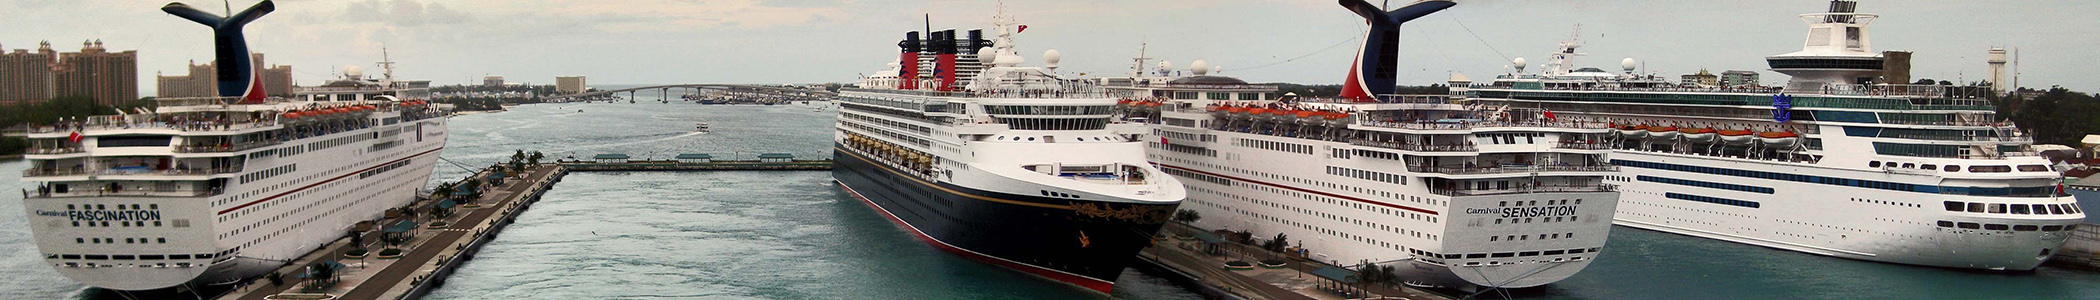 Cruise Ships Travel Guide At Wikivoyage - How many mph does a cruise ship go